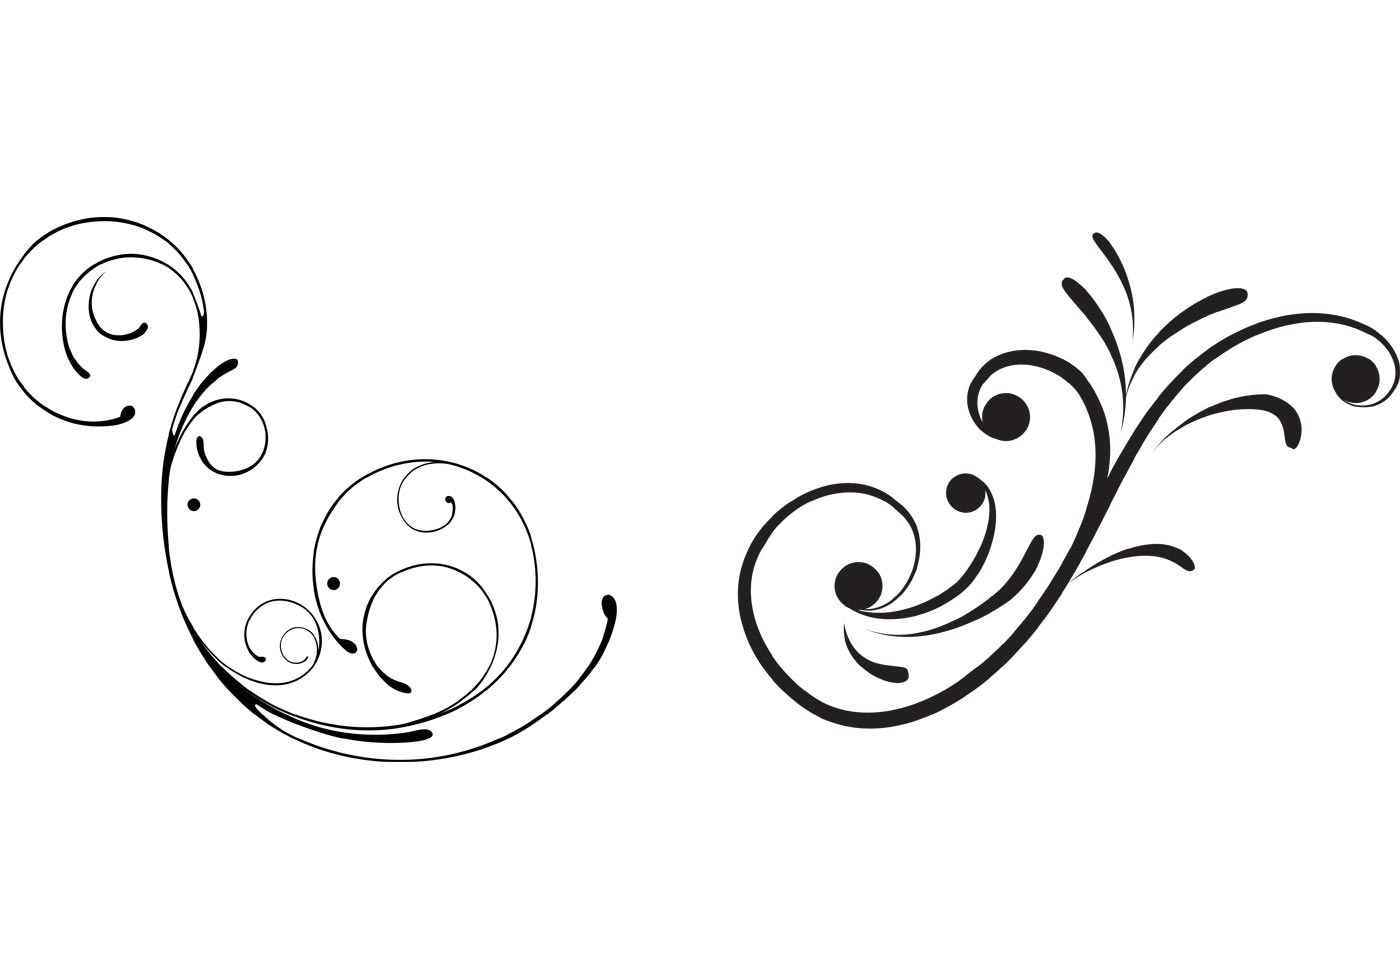 475 Vector Wreaths in addition Stock Illustration Bird Flowers Cute Little Rose Black White Vector Design Element Image44246604 additionally Arrow Vector Icon Sets Isolated 14523663 likewise 1244463 Black Abstract Sun Simple Design furthermore Stock Image Lying Cat Pencil Drawing Image28544541. on wedding background graphics